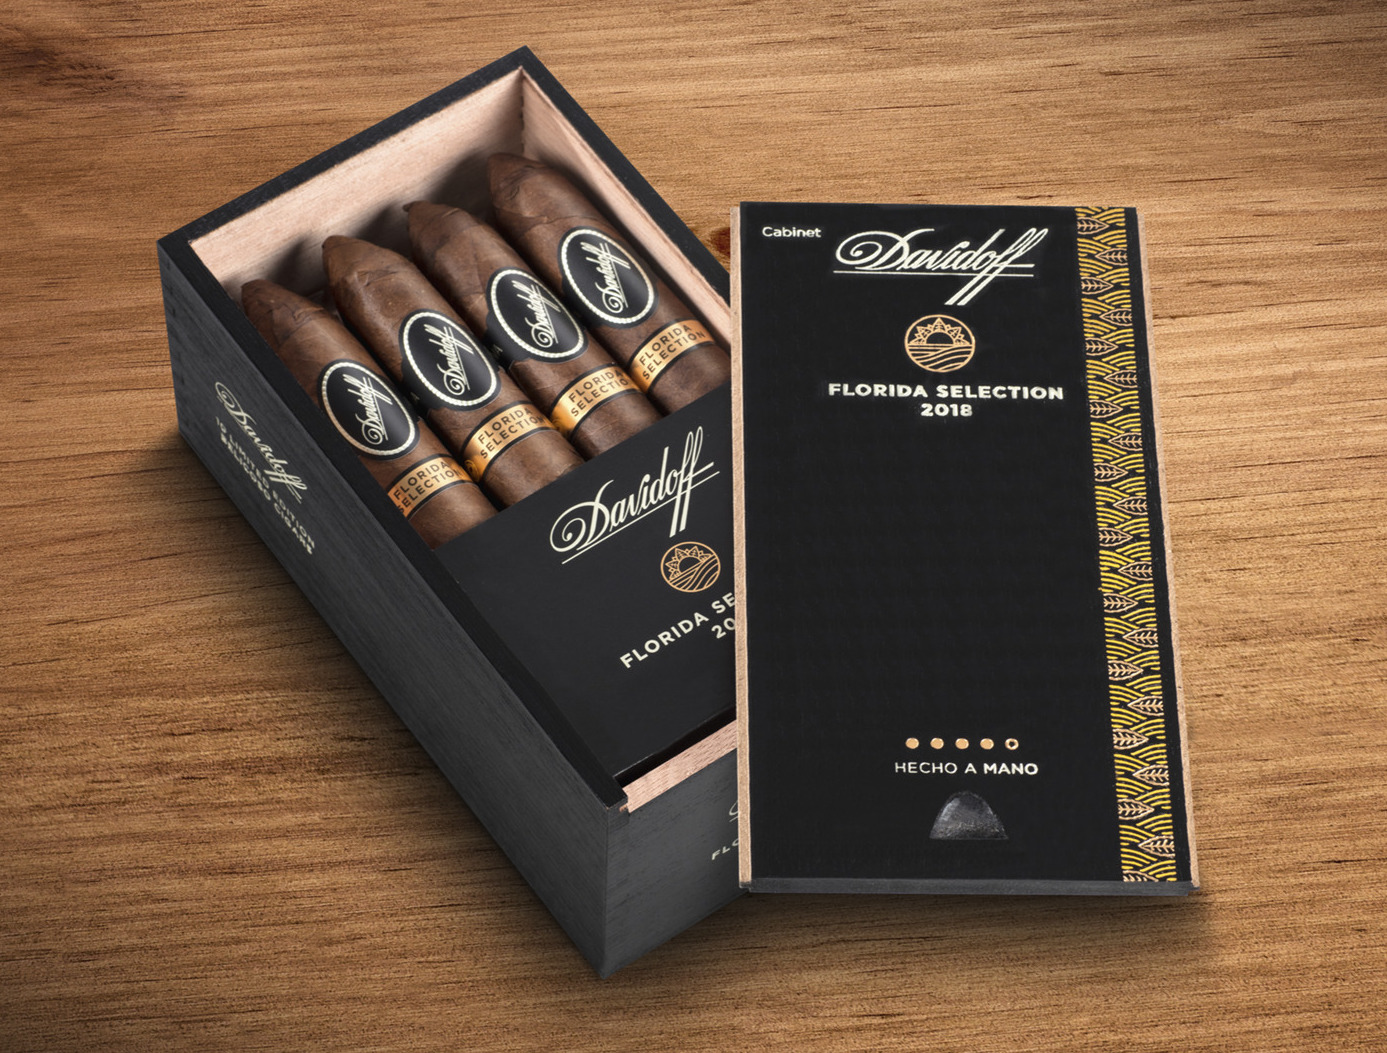 cigar news davidoff florida selection 2018 limited edition announced. Black Bedroom Furniture Sets. Home Design Ideas